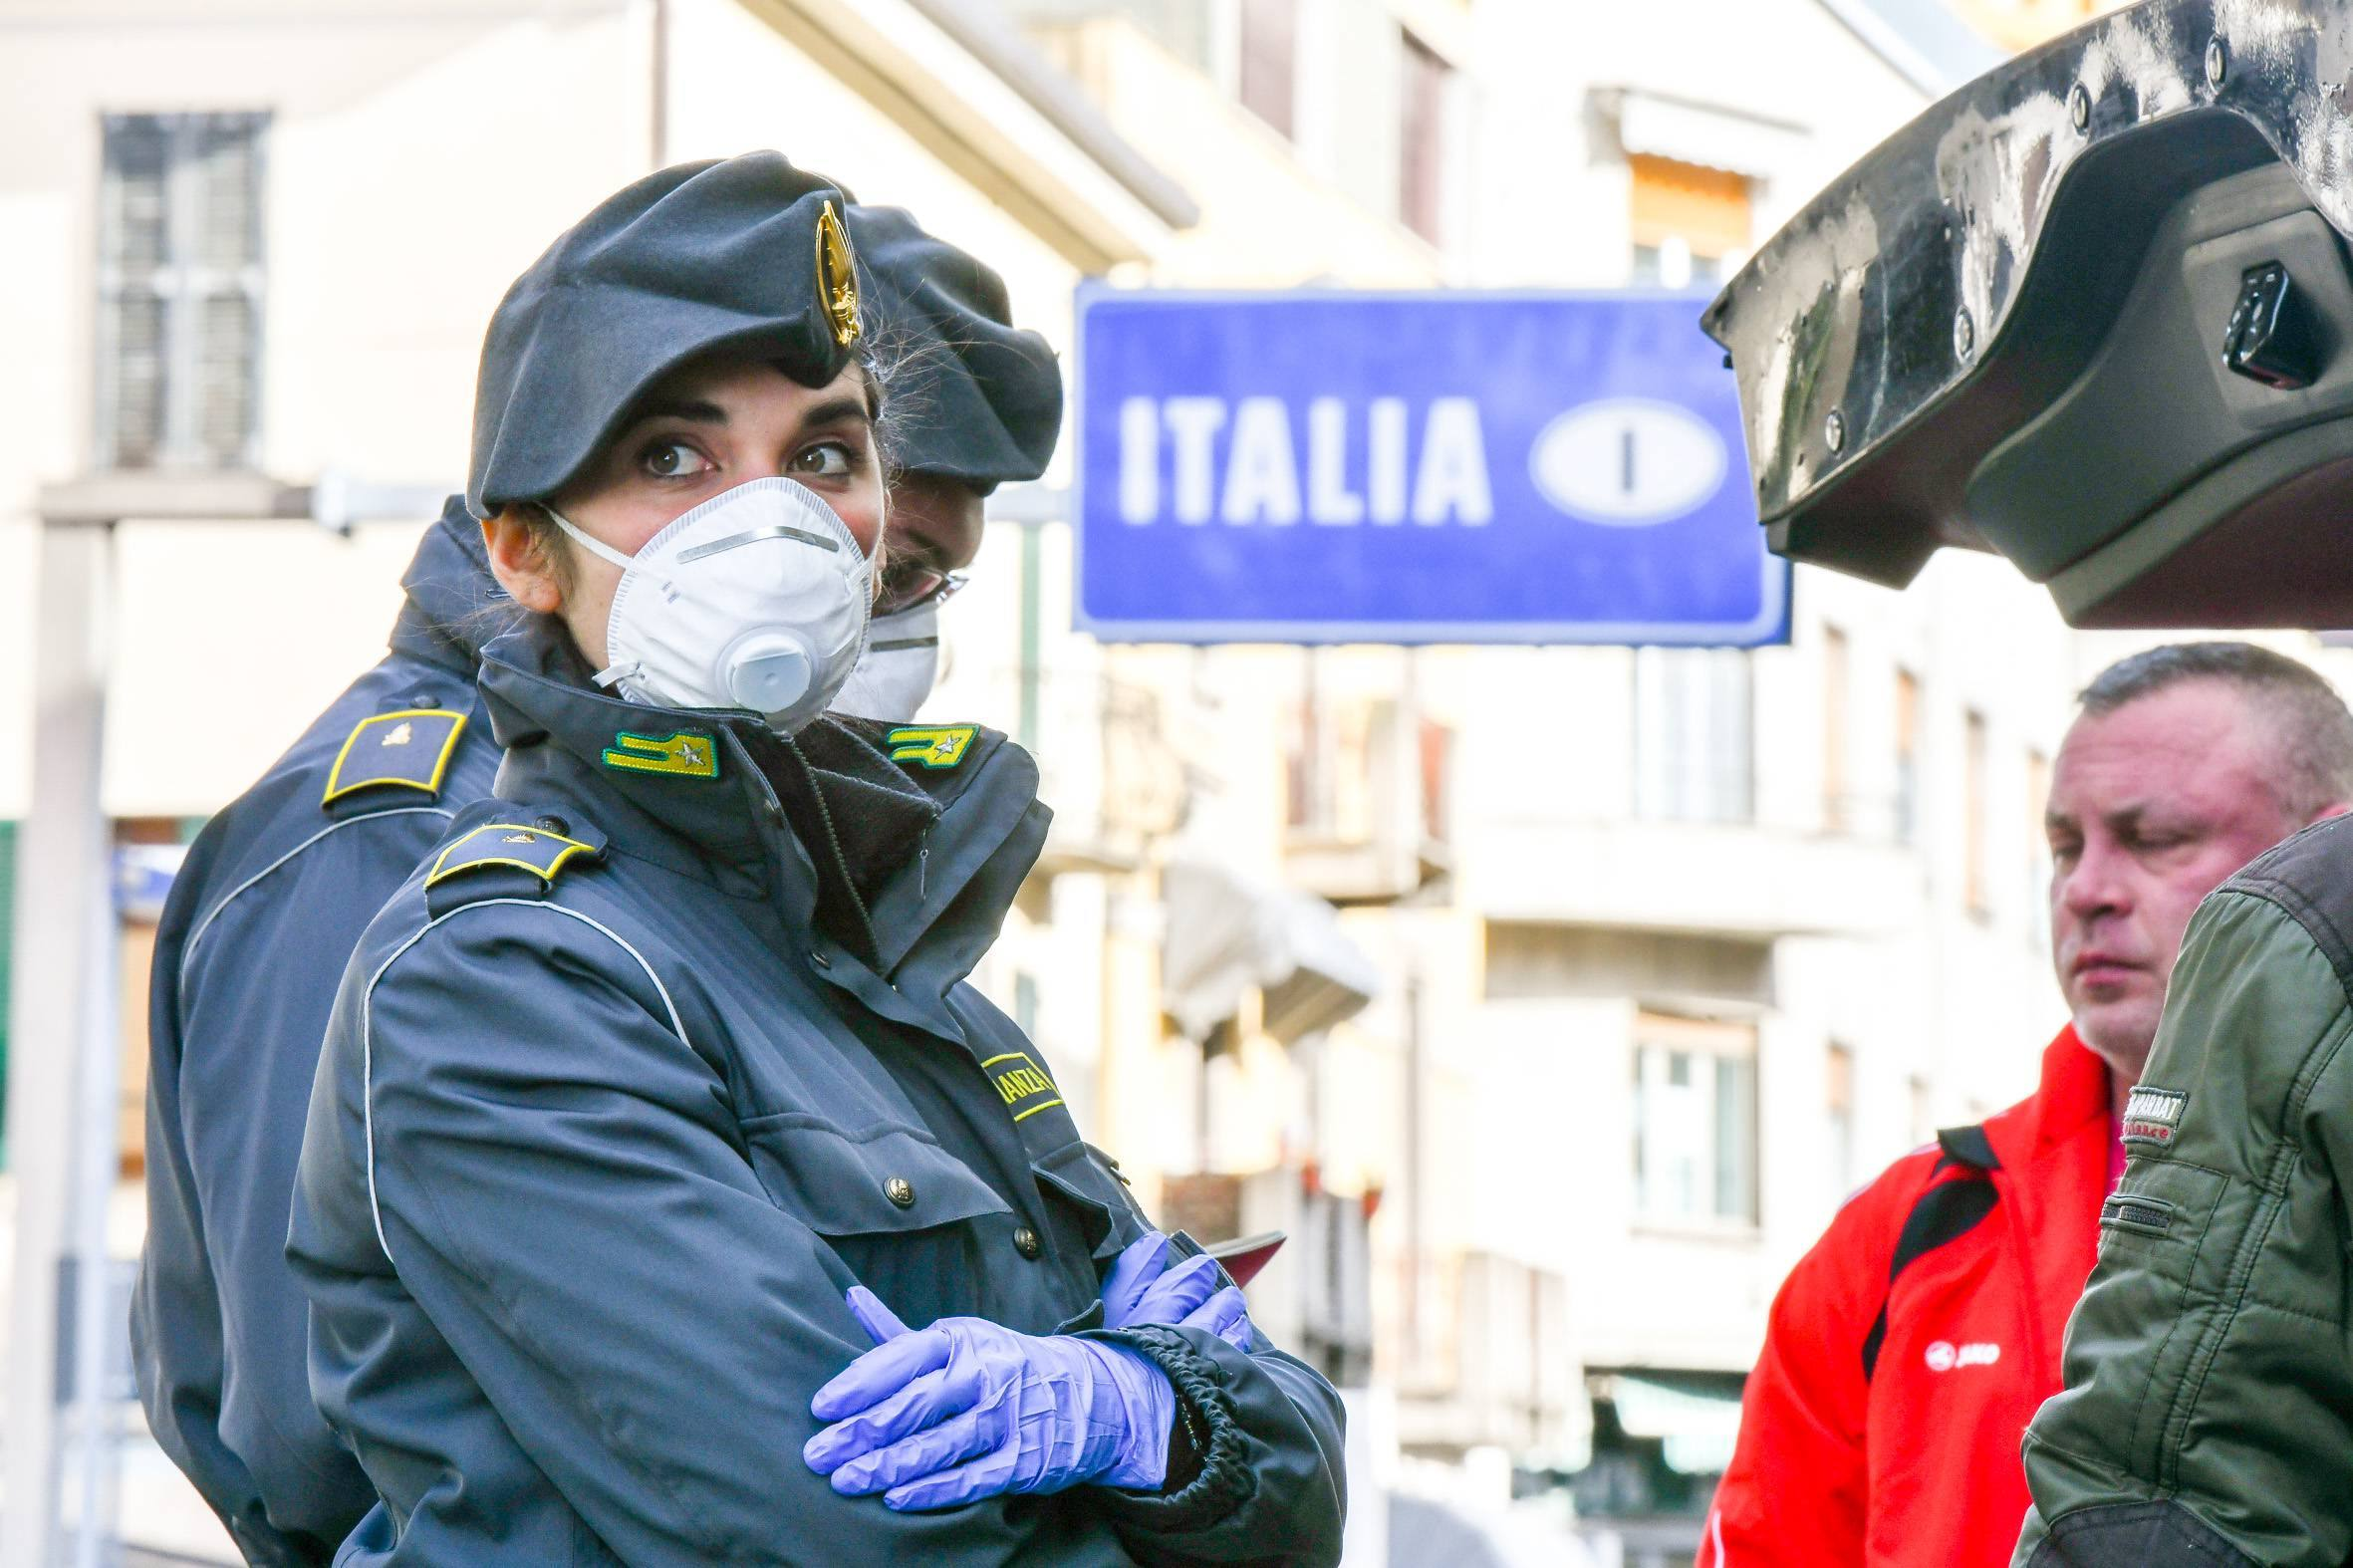 Italy was the first country in Europe to be hit hard by the virus.